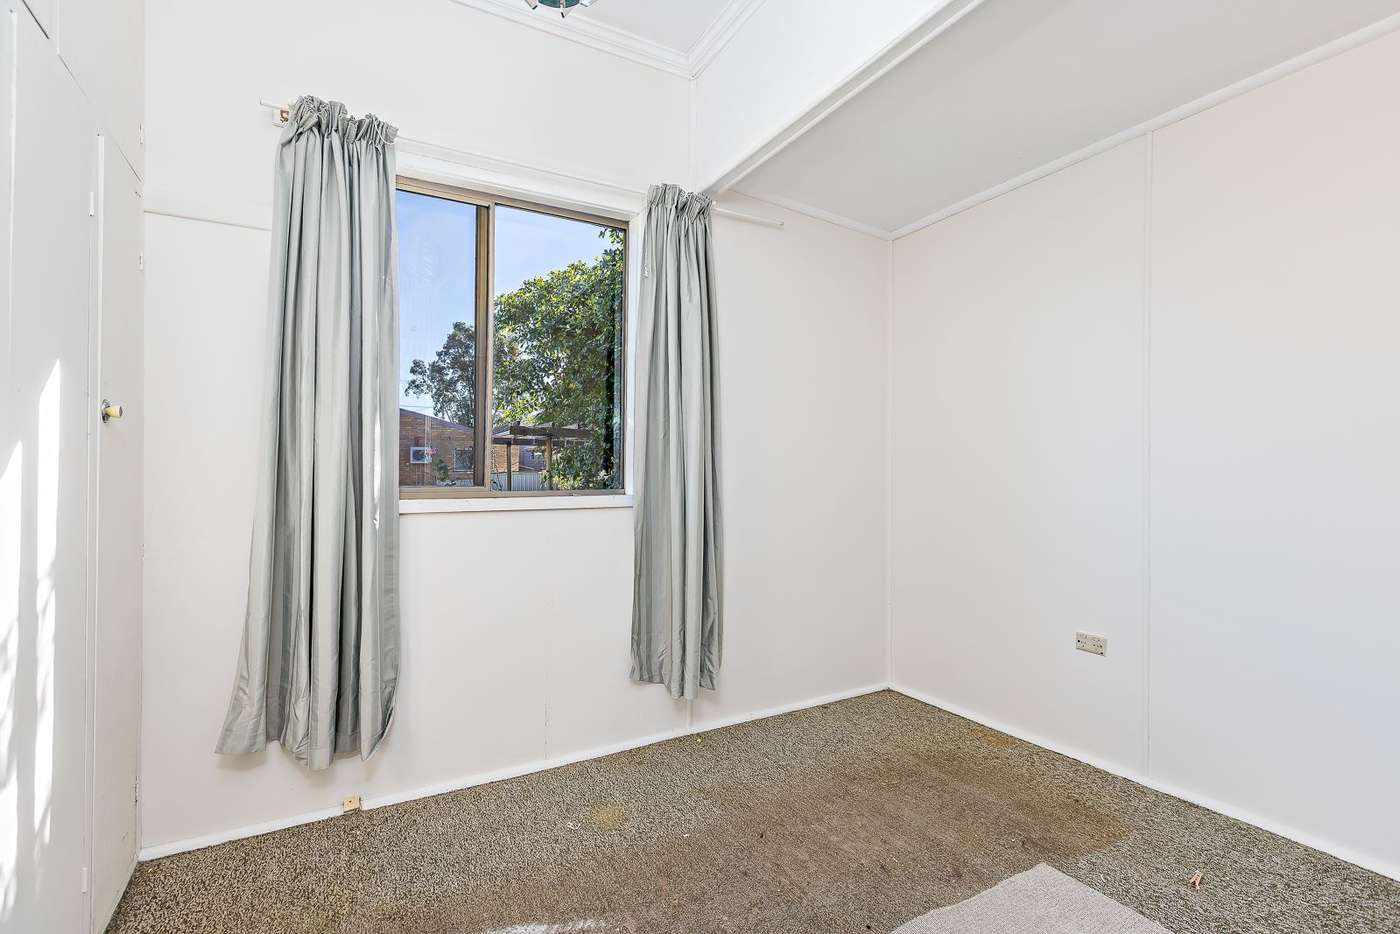 Sixth view of Homely house listing, 7 Charles Street, Charlestown NSW 2290